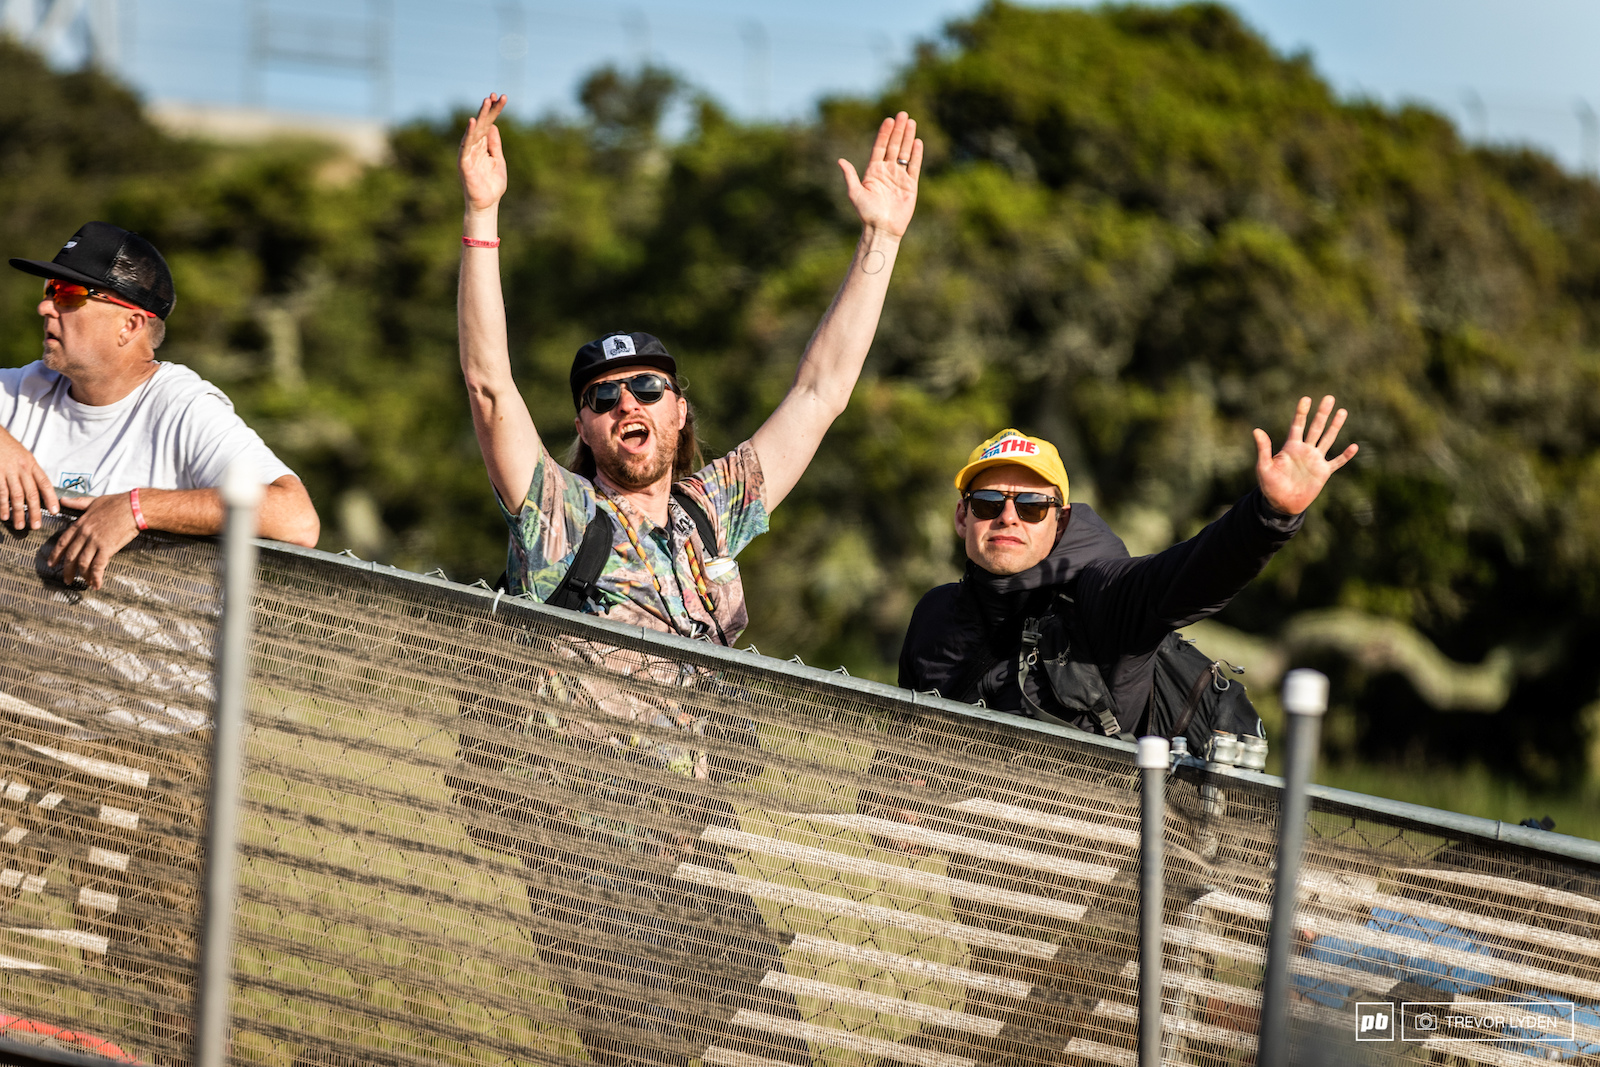 The fans were stoked with the racing.